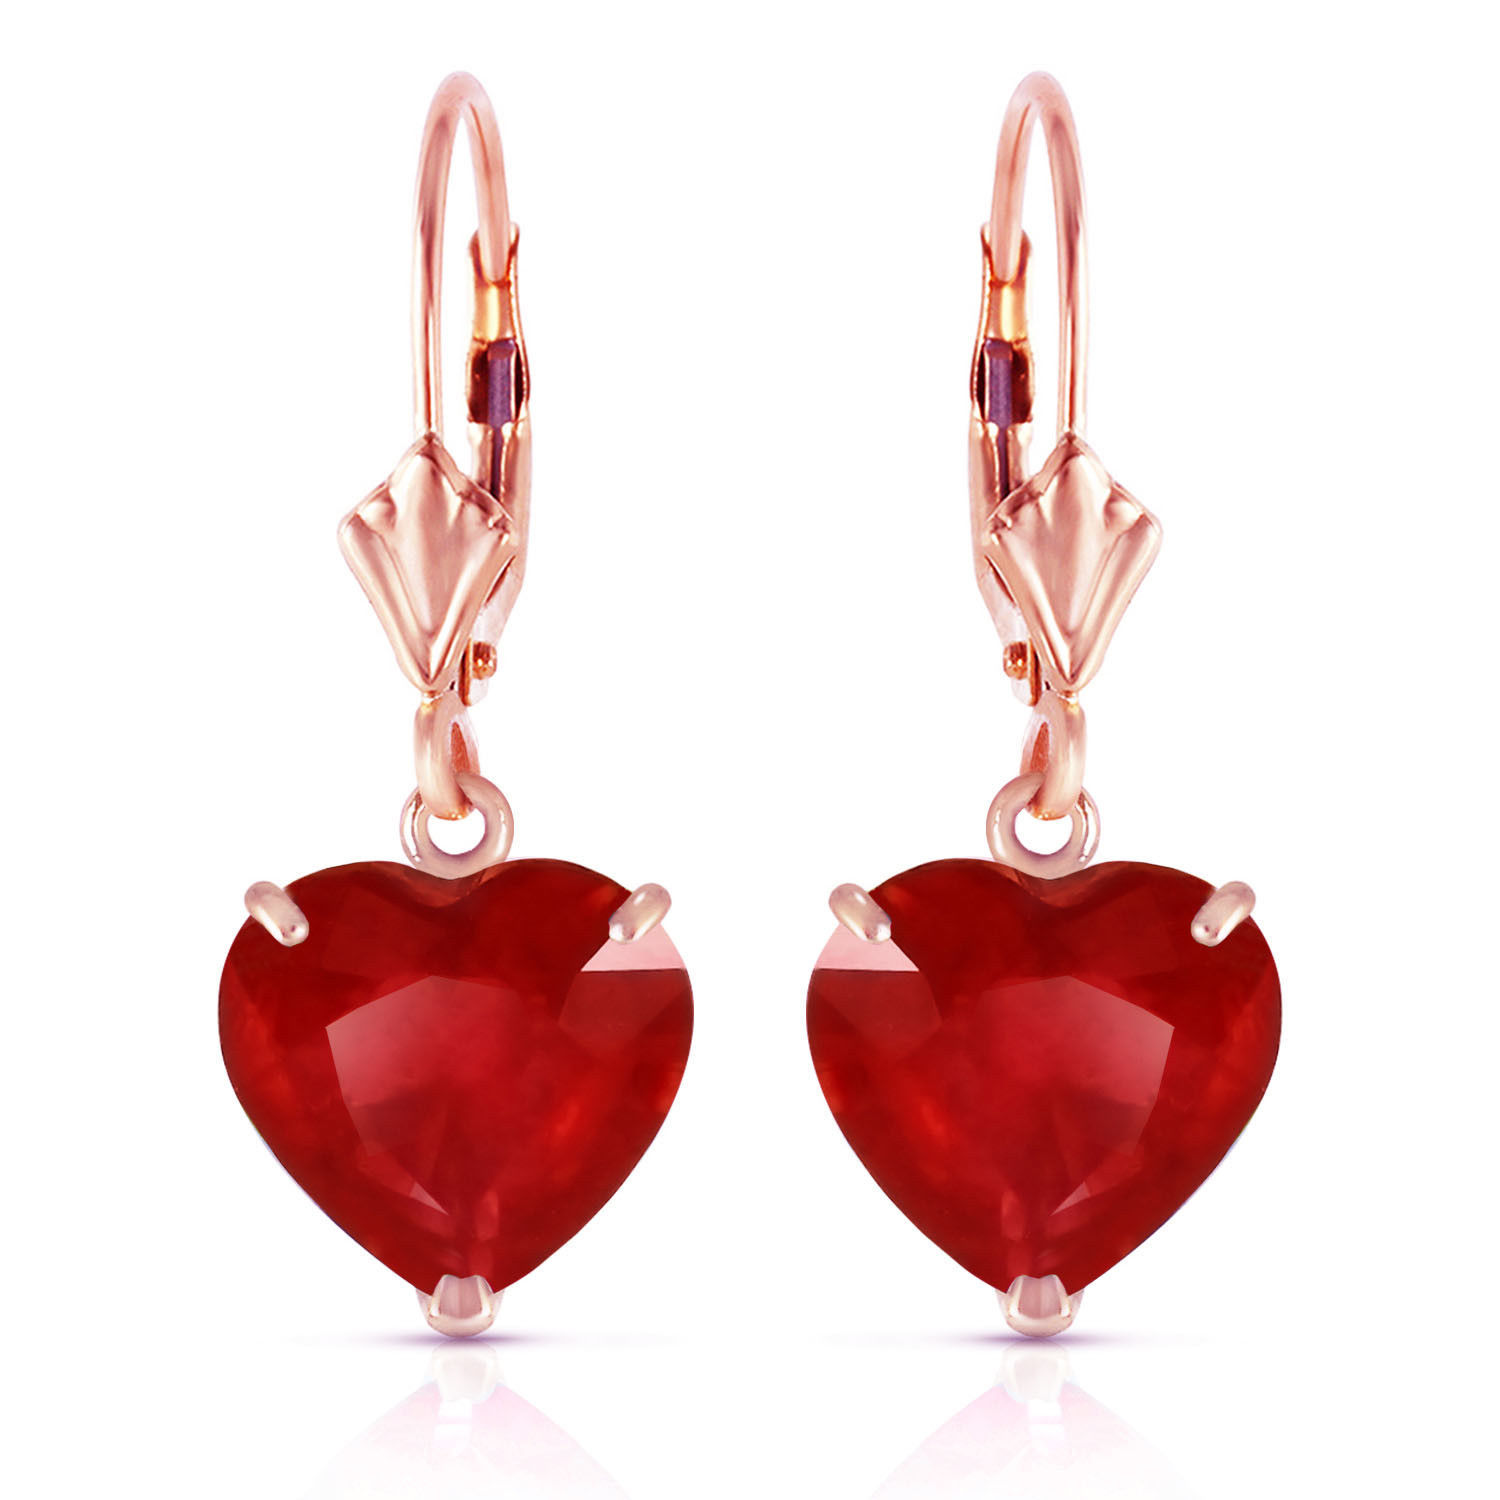 Primary image for 14K Solid Rose Gold Leverback Earrings Natural 10mm Heart rubyes